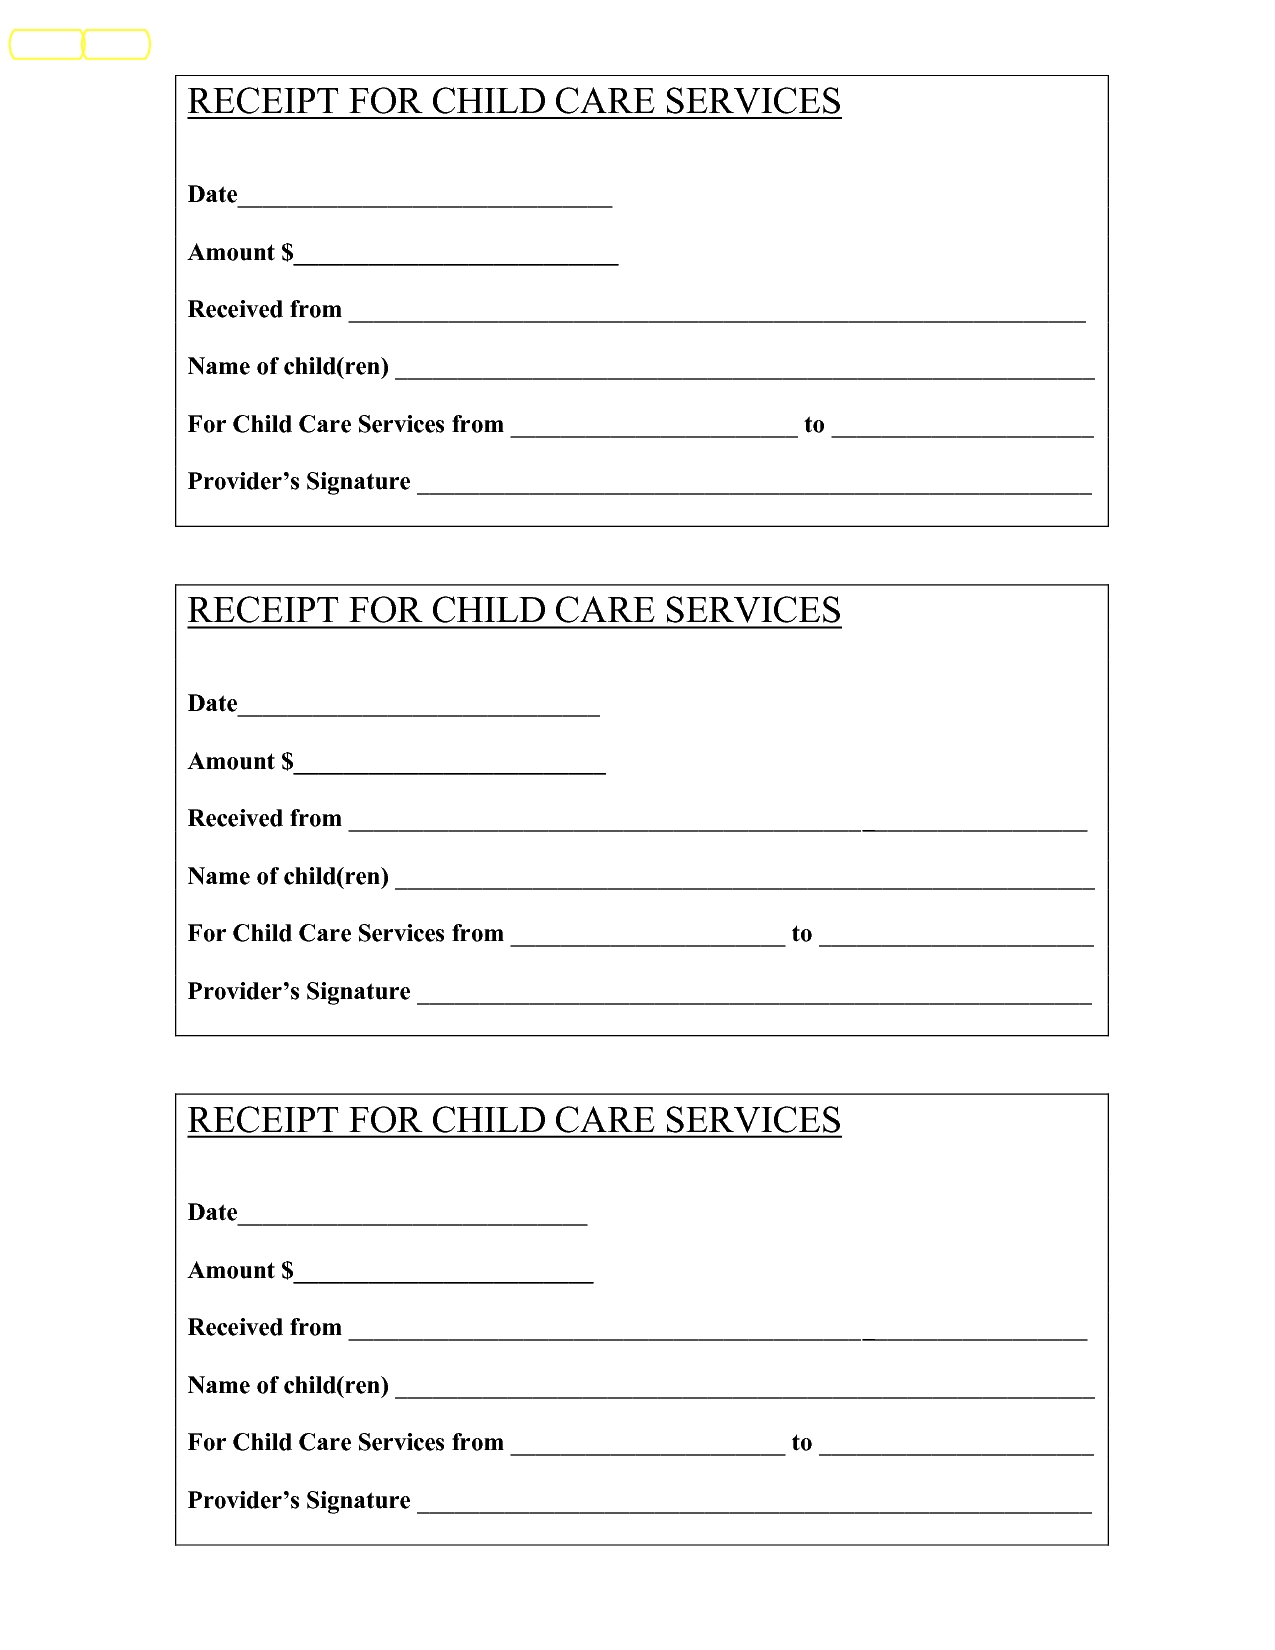 basitting receipt bing images child care services child care receipt template